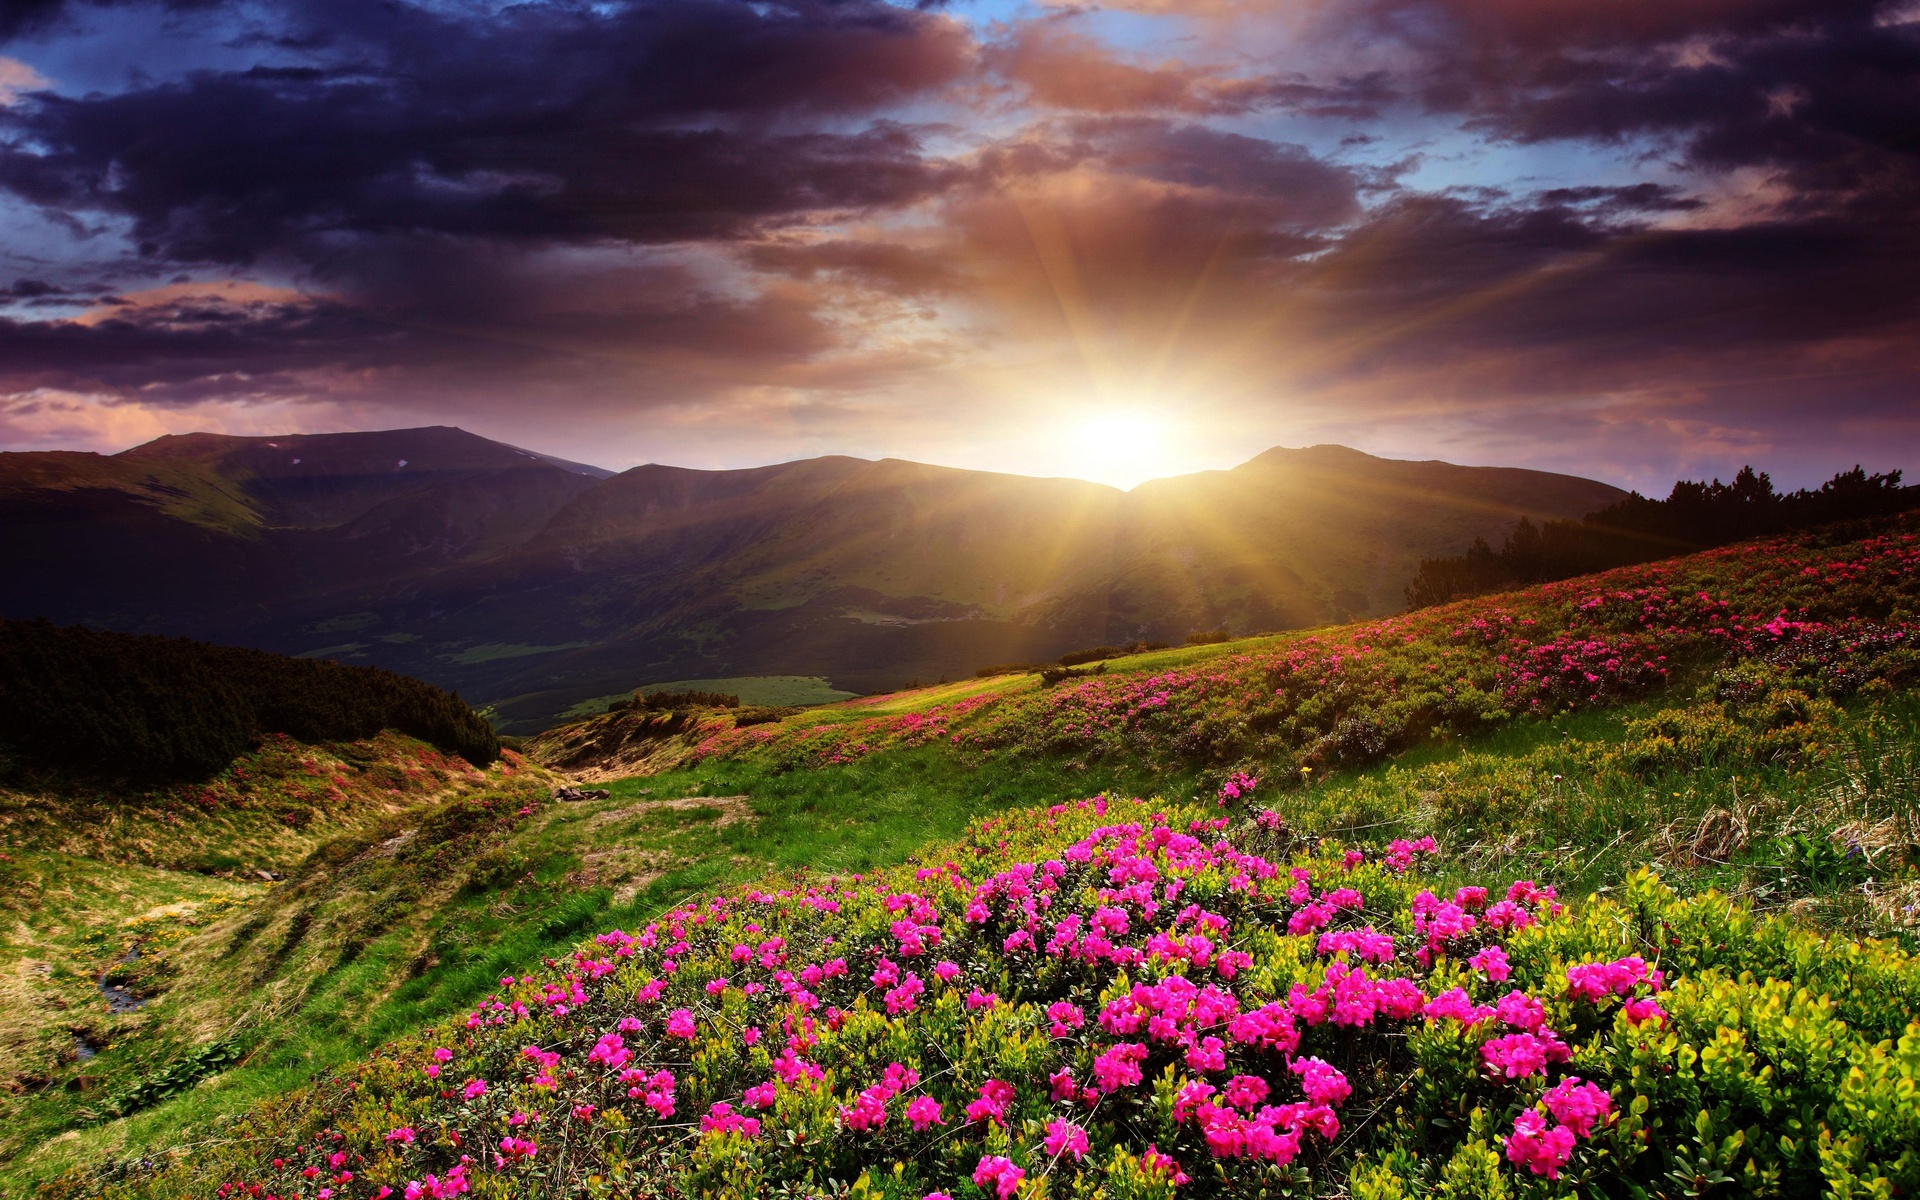 Sunset mountains flowers landscape wallpaper 1920x1200 for Flower landscape